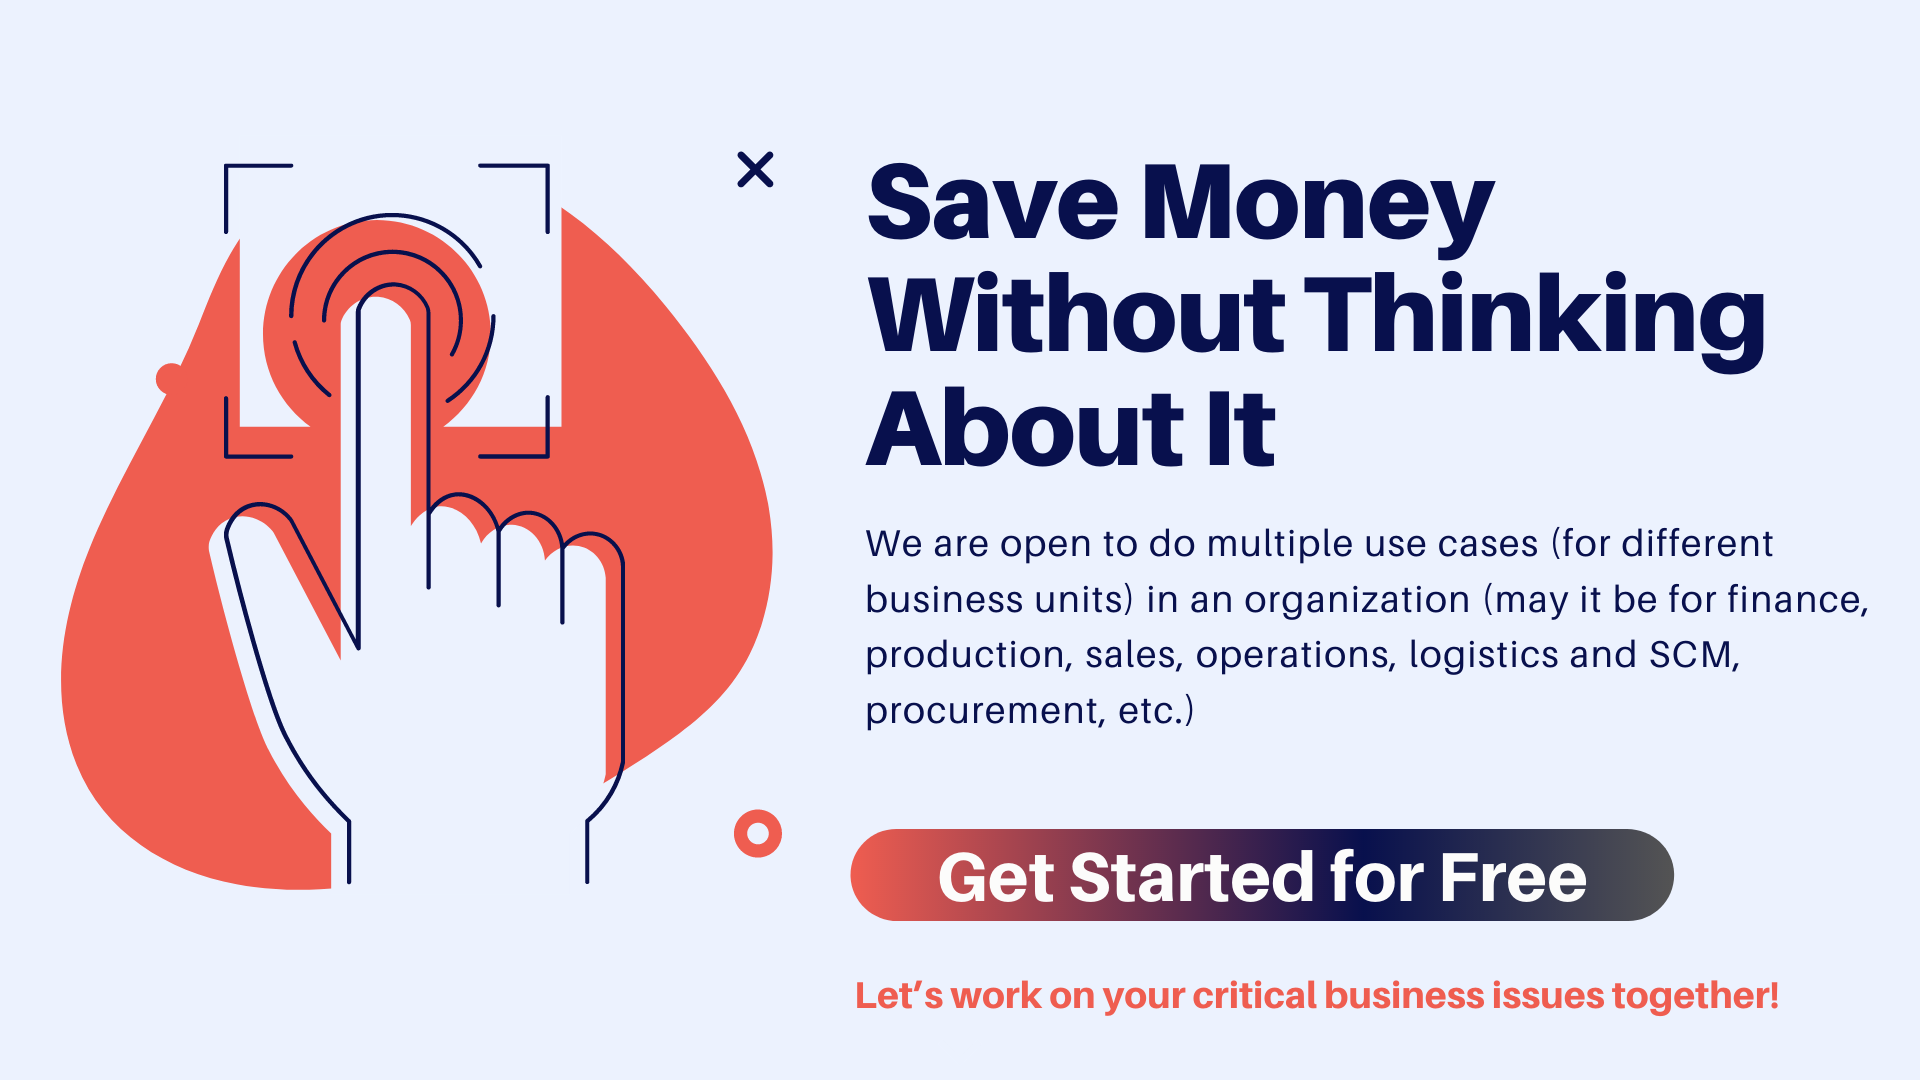 Get Started for Free